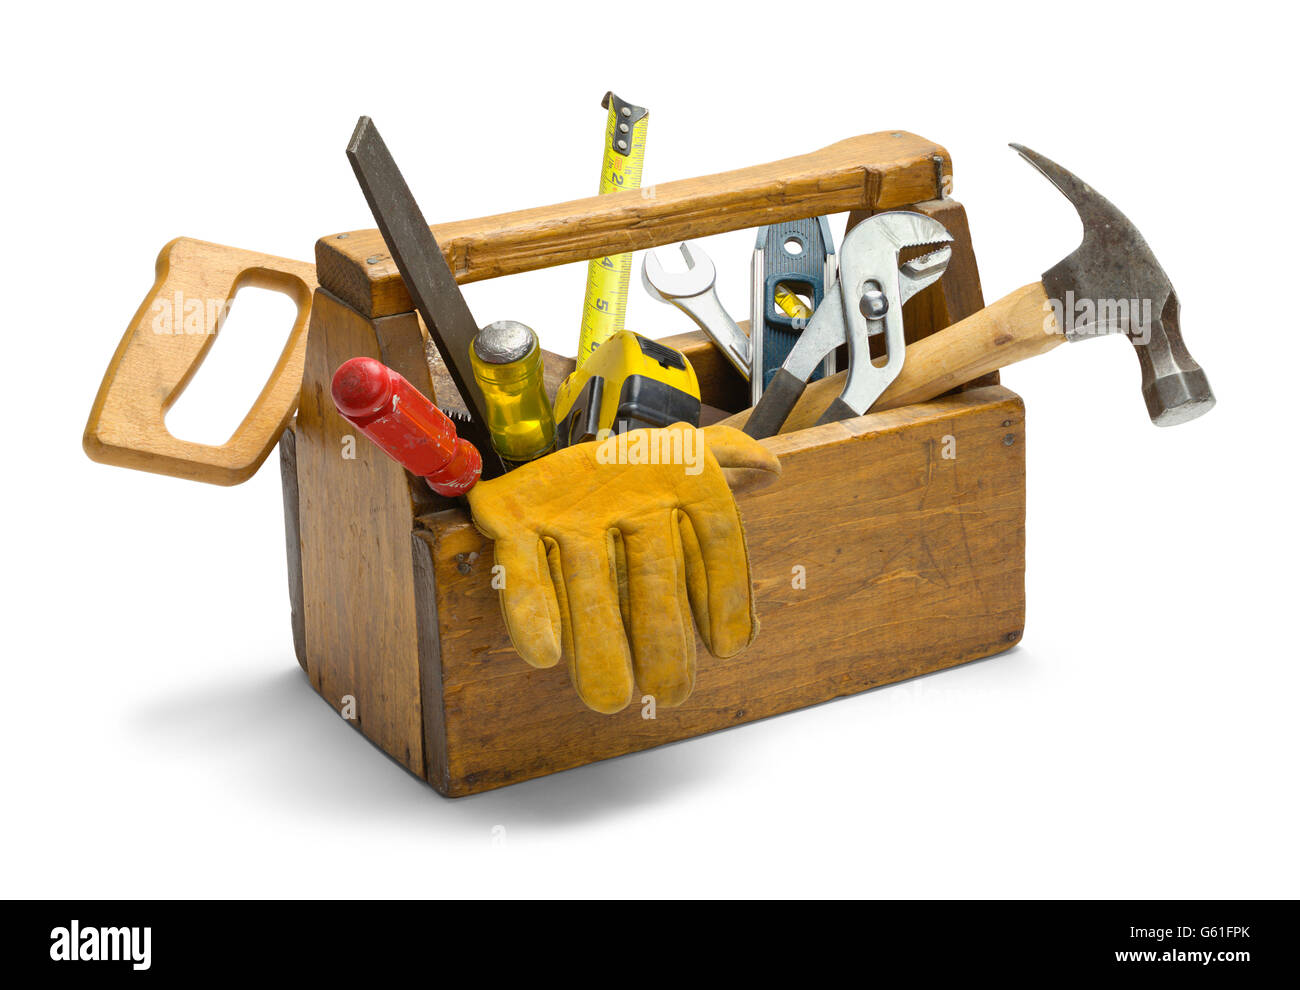 Old Wooden Tool Box Full of Tools Isolated on White Background. - Stock Image